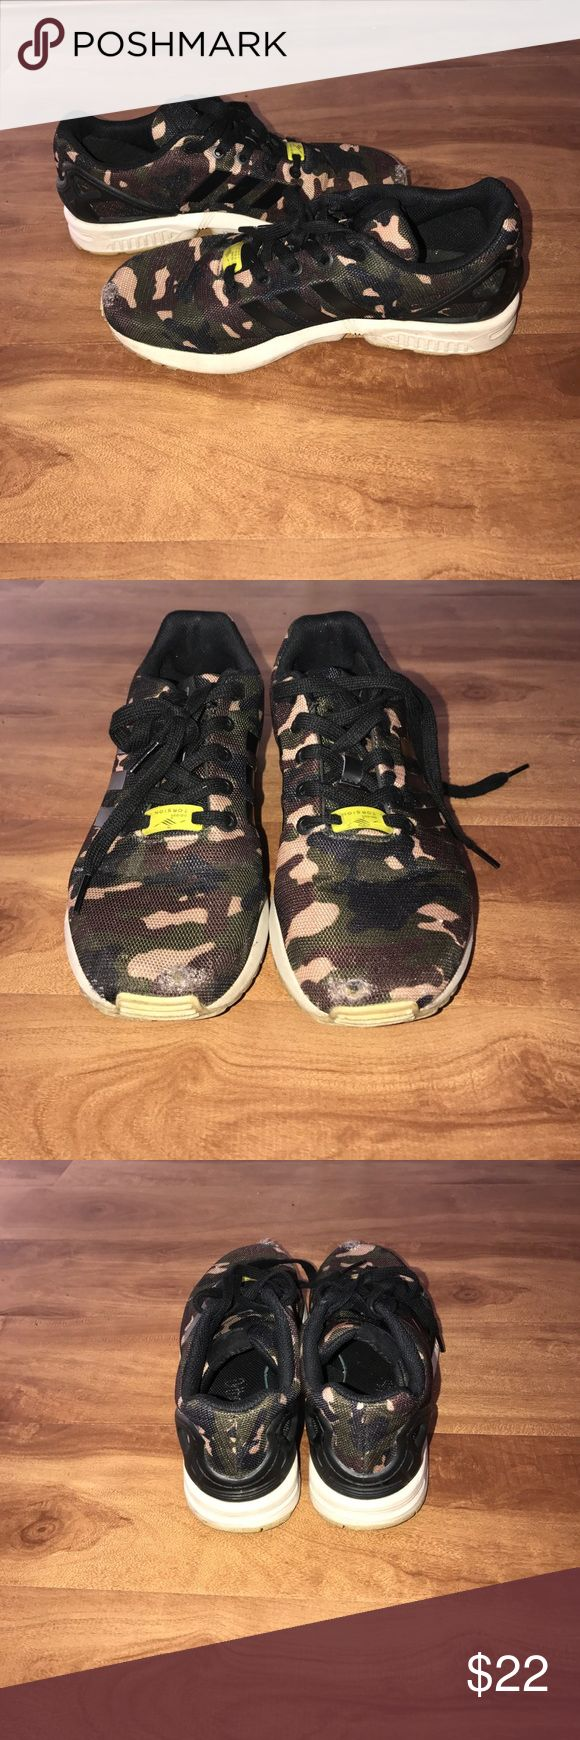 Adidas ZX Flux camo 4/10 condition. Main problem are wearing/holes in toe area. Size 6 boys YOUTH. 7.5-8 in women's Adidas Shoes Sneakers